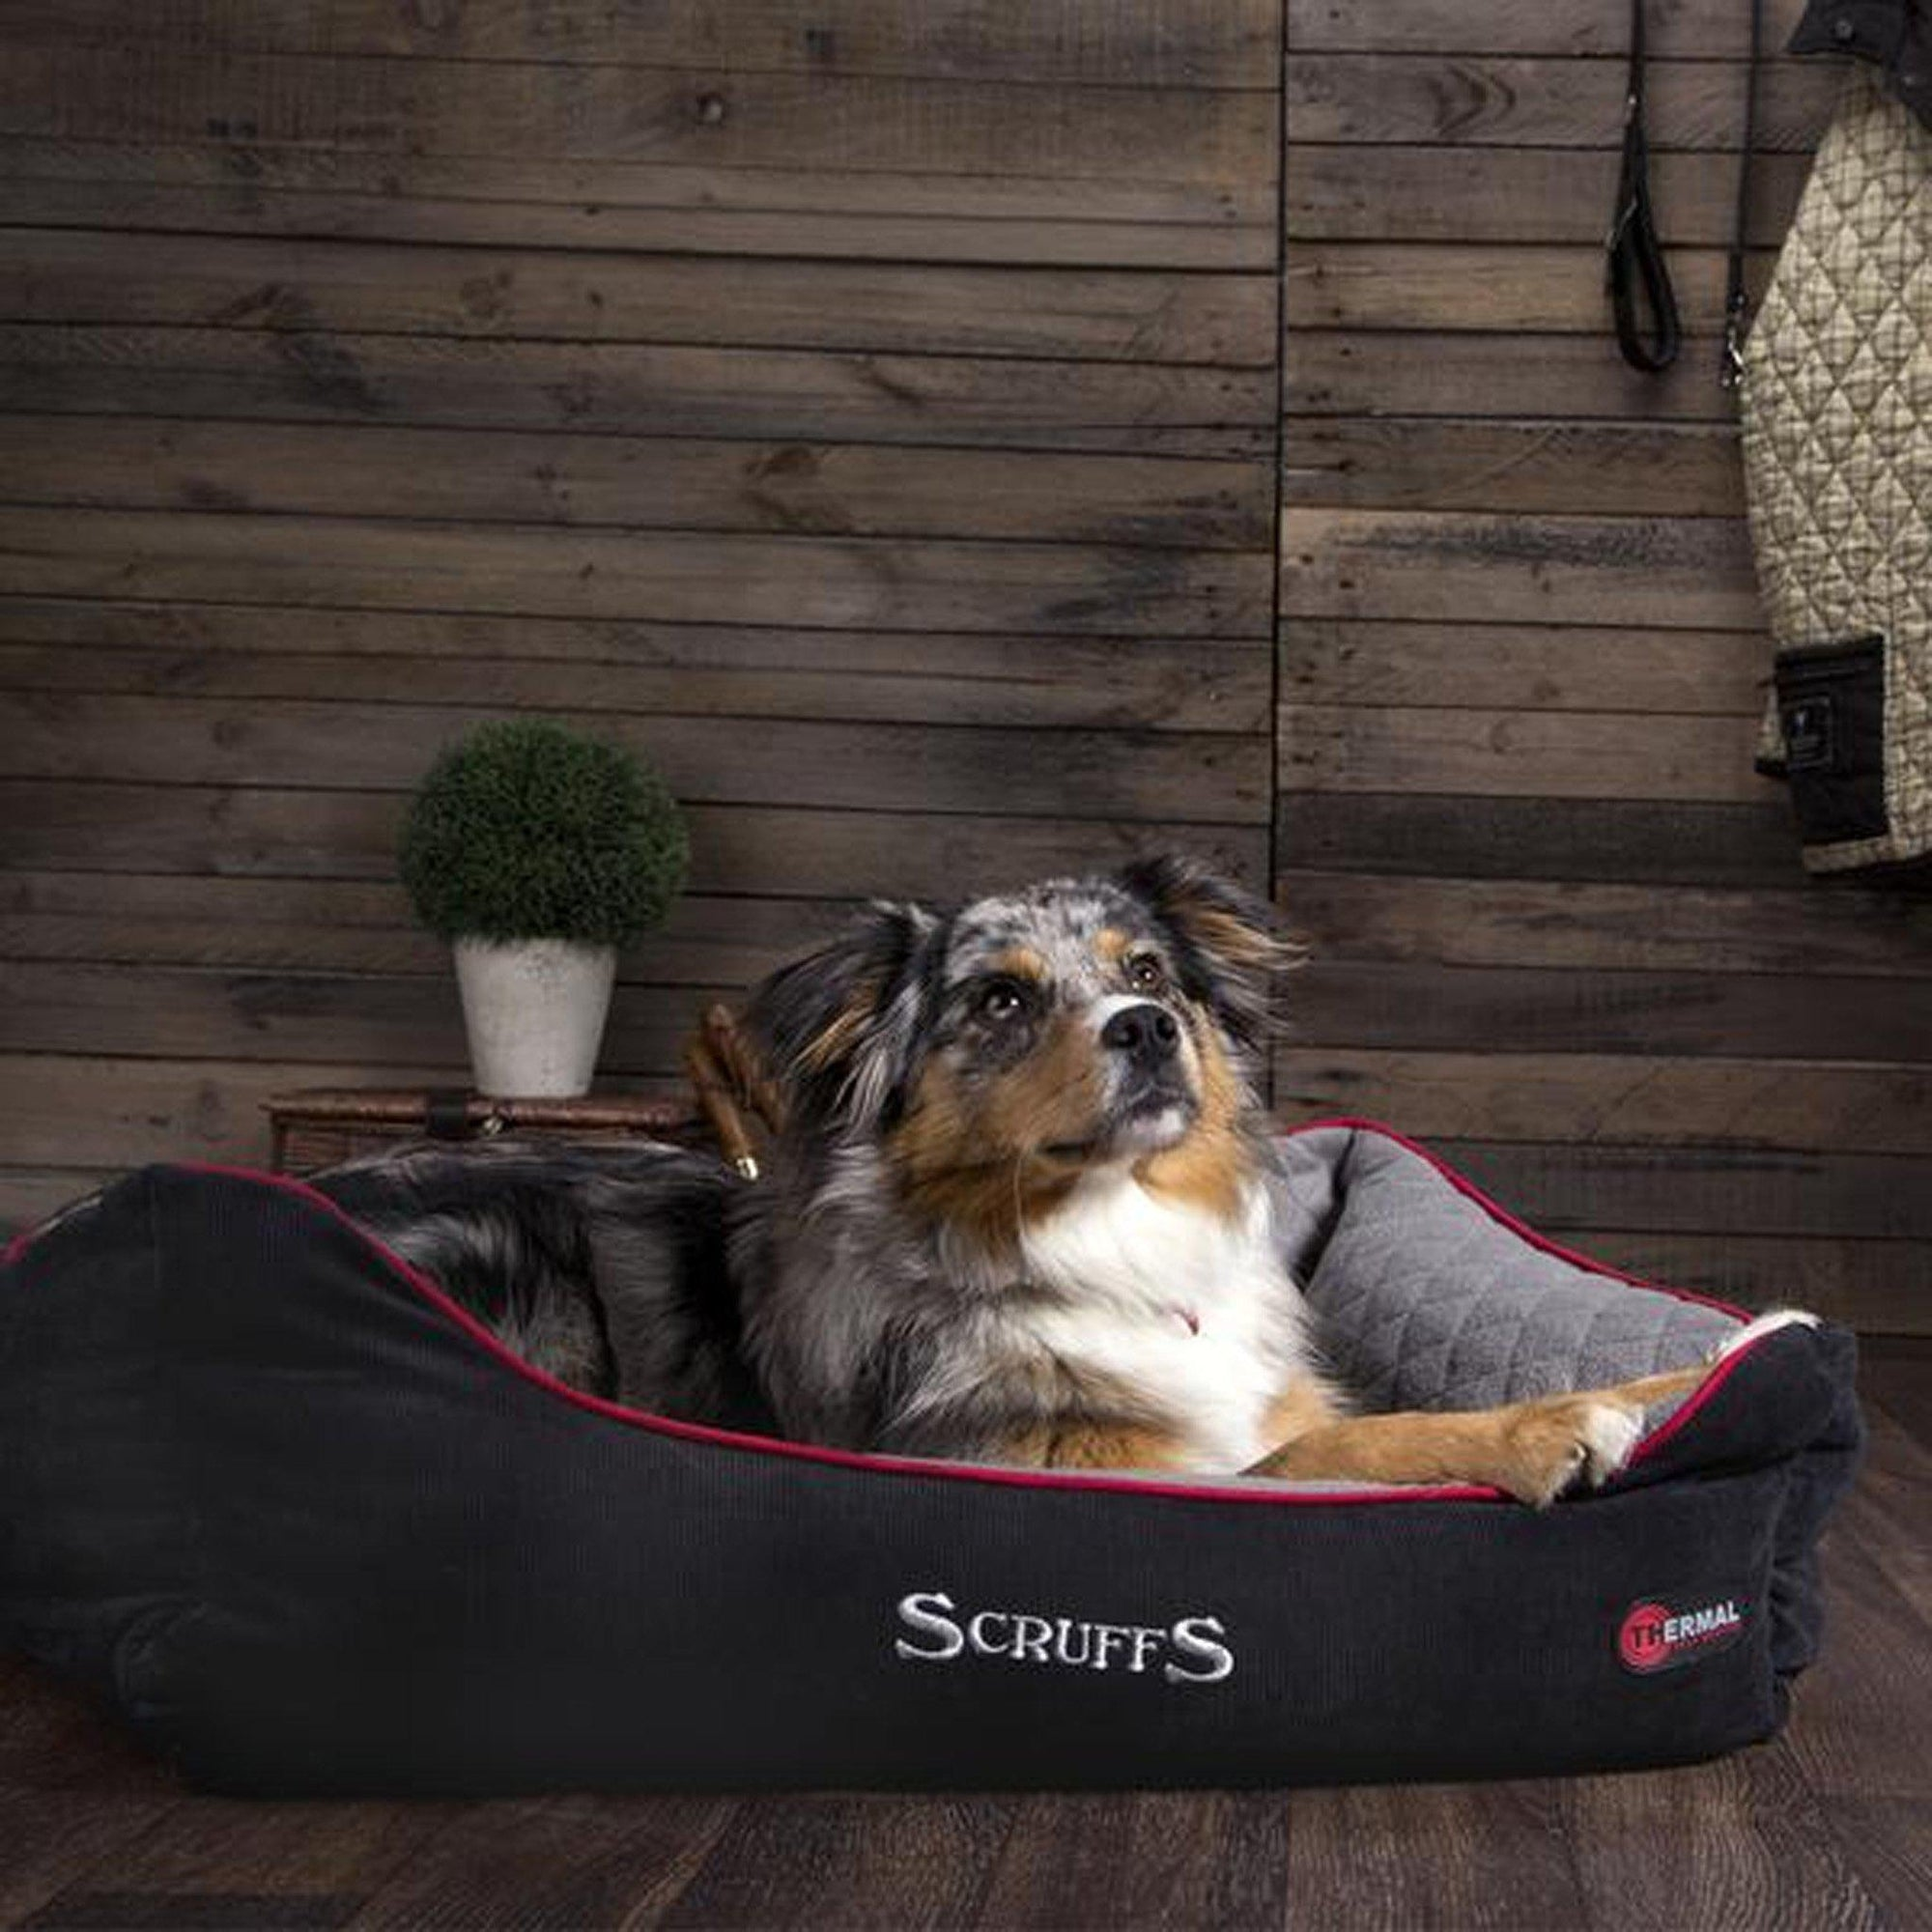 Scruffs Thermal Box Bed - ComfyPet Products